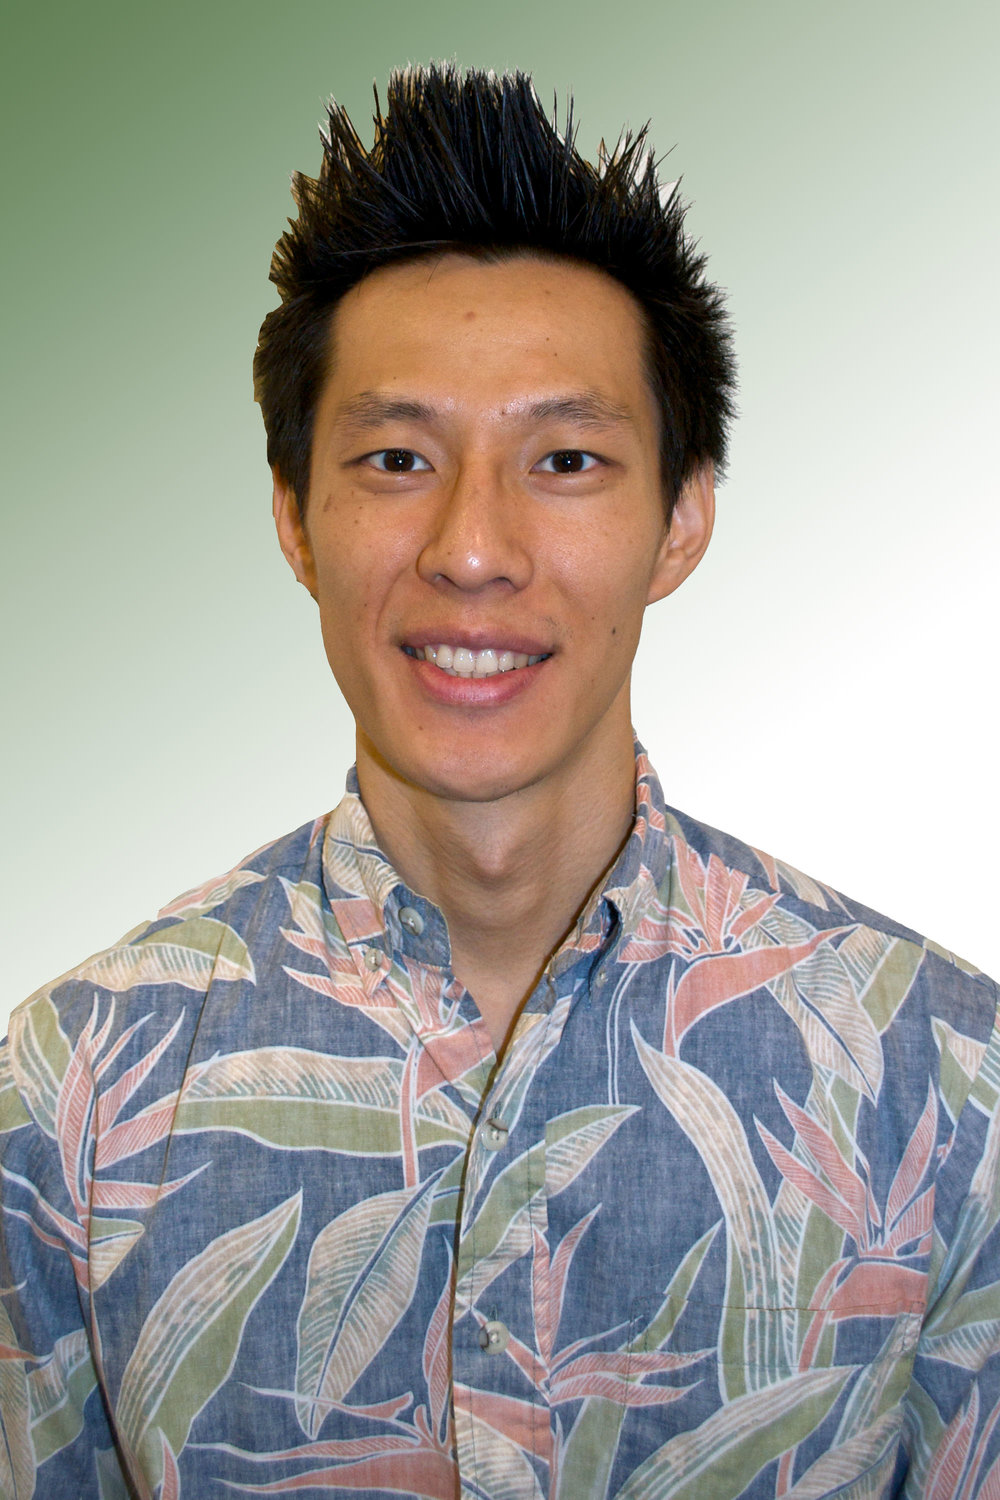 Professional Registration  2008   Mechanical Engineering, California (34058) 2011   Mechanical Engineering, Hawaii (14297) 2012 Fire Protection Engineering, California (1805)   Professional Experience  Yoon Hwang has been with InSynergy Engineering, Inc. for 12 years. He is a registered mechanical,  fire protection and  LEED Accredited Professional.  He has completed the design of major mechanical and plumbing design work for various private and government clients including Kaiser Permanente, State DOT-A, NAVFAC, Army Corps, and Tripler Army Medical Center.